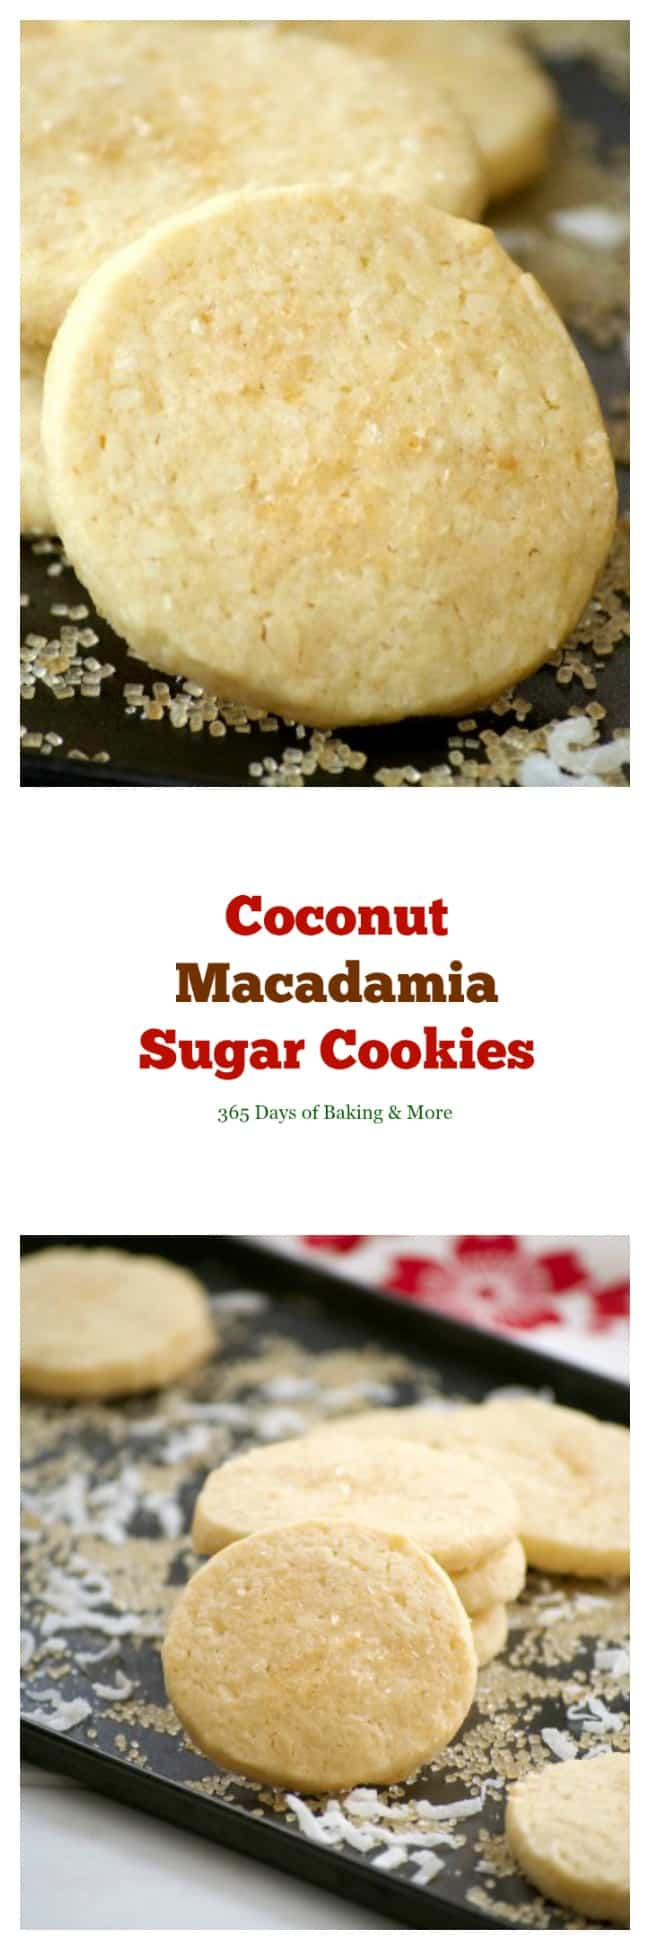 This Coconut Macadamia Nut Shortbread is a butter shortbread cookie with shredded coconut and macadamia nuts to remind you of the tropics.